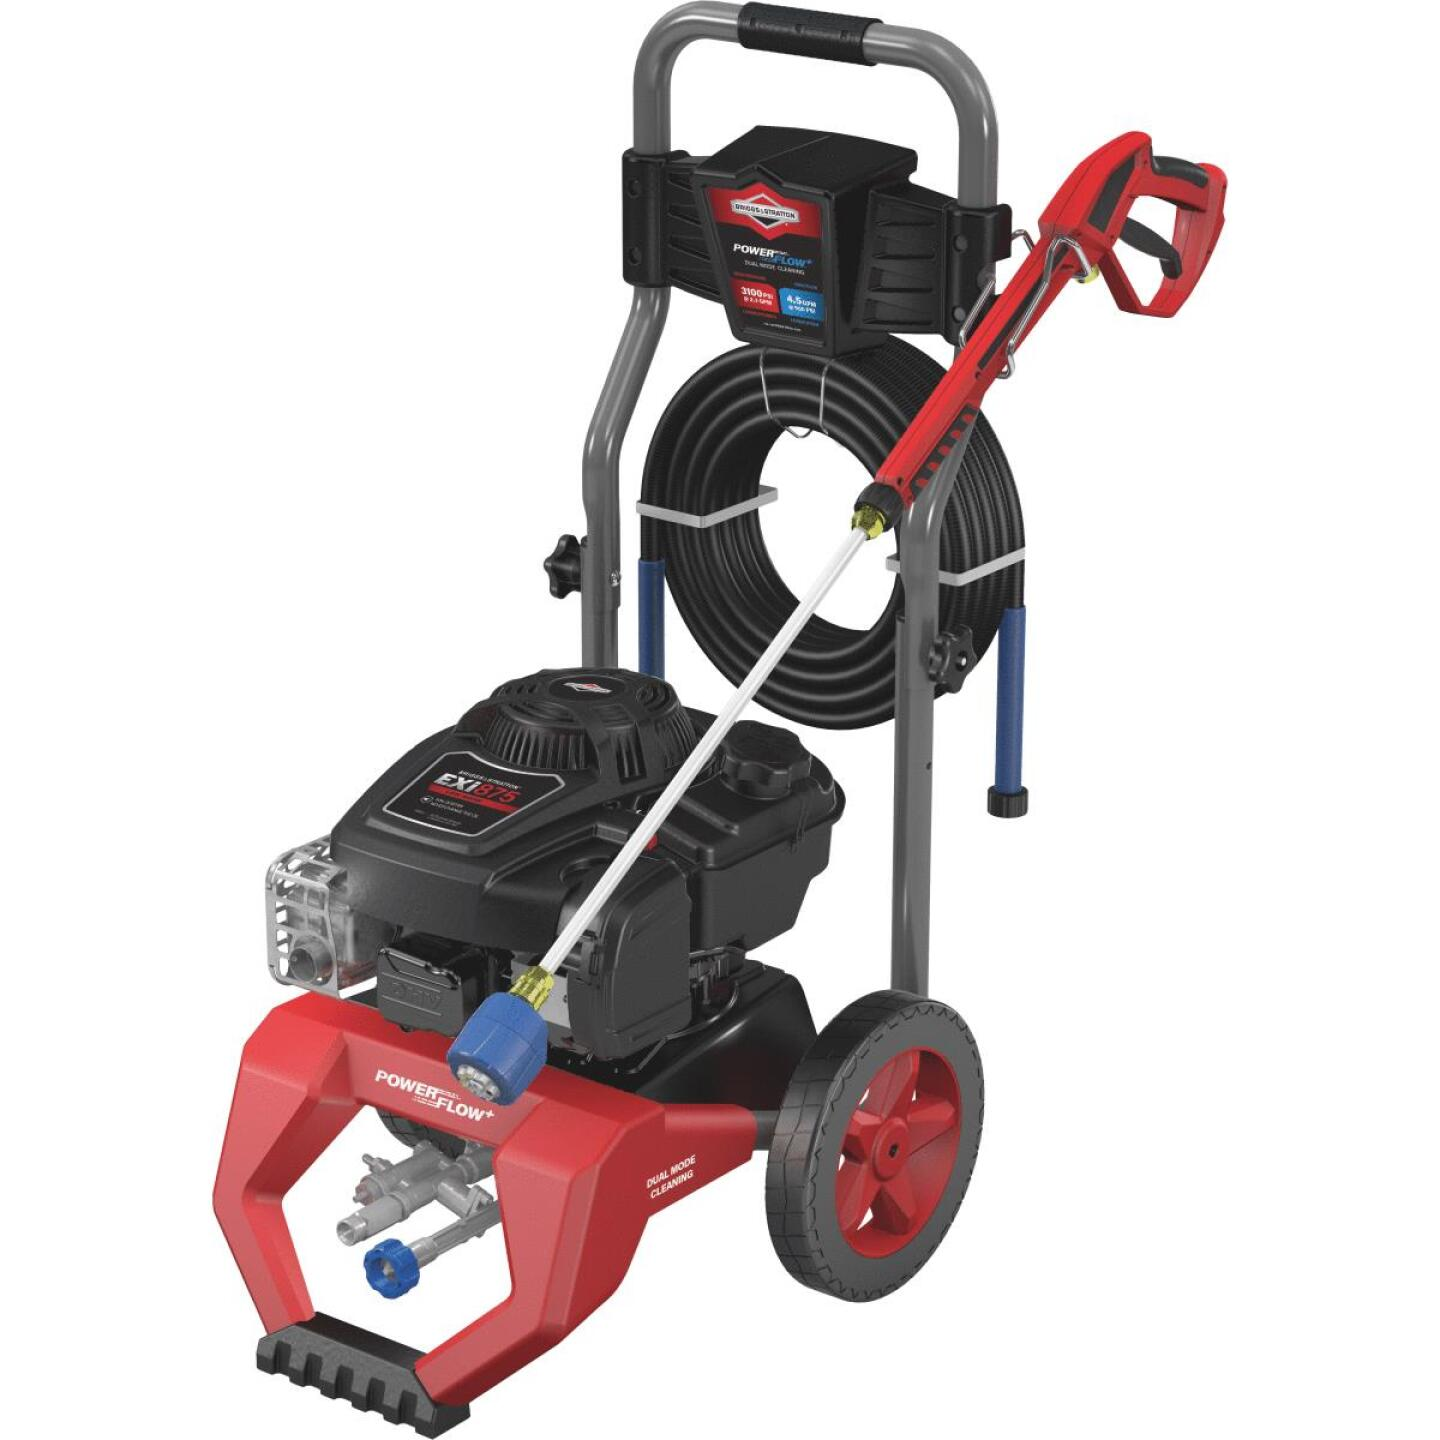 Briggs & Stratton PowerFlow+ 3100 psi 4.5 GPM Gas Pressure Washer Image 1